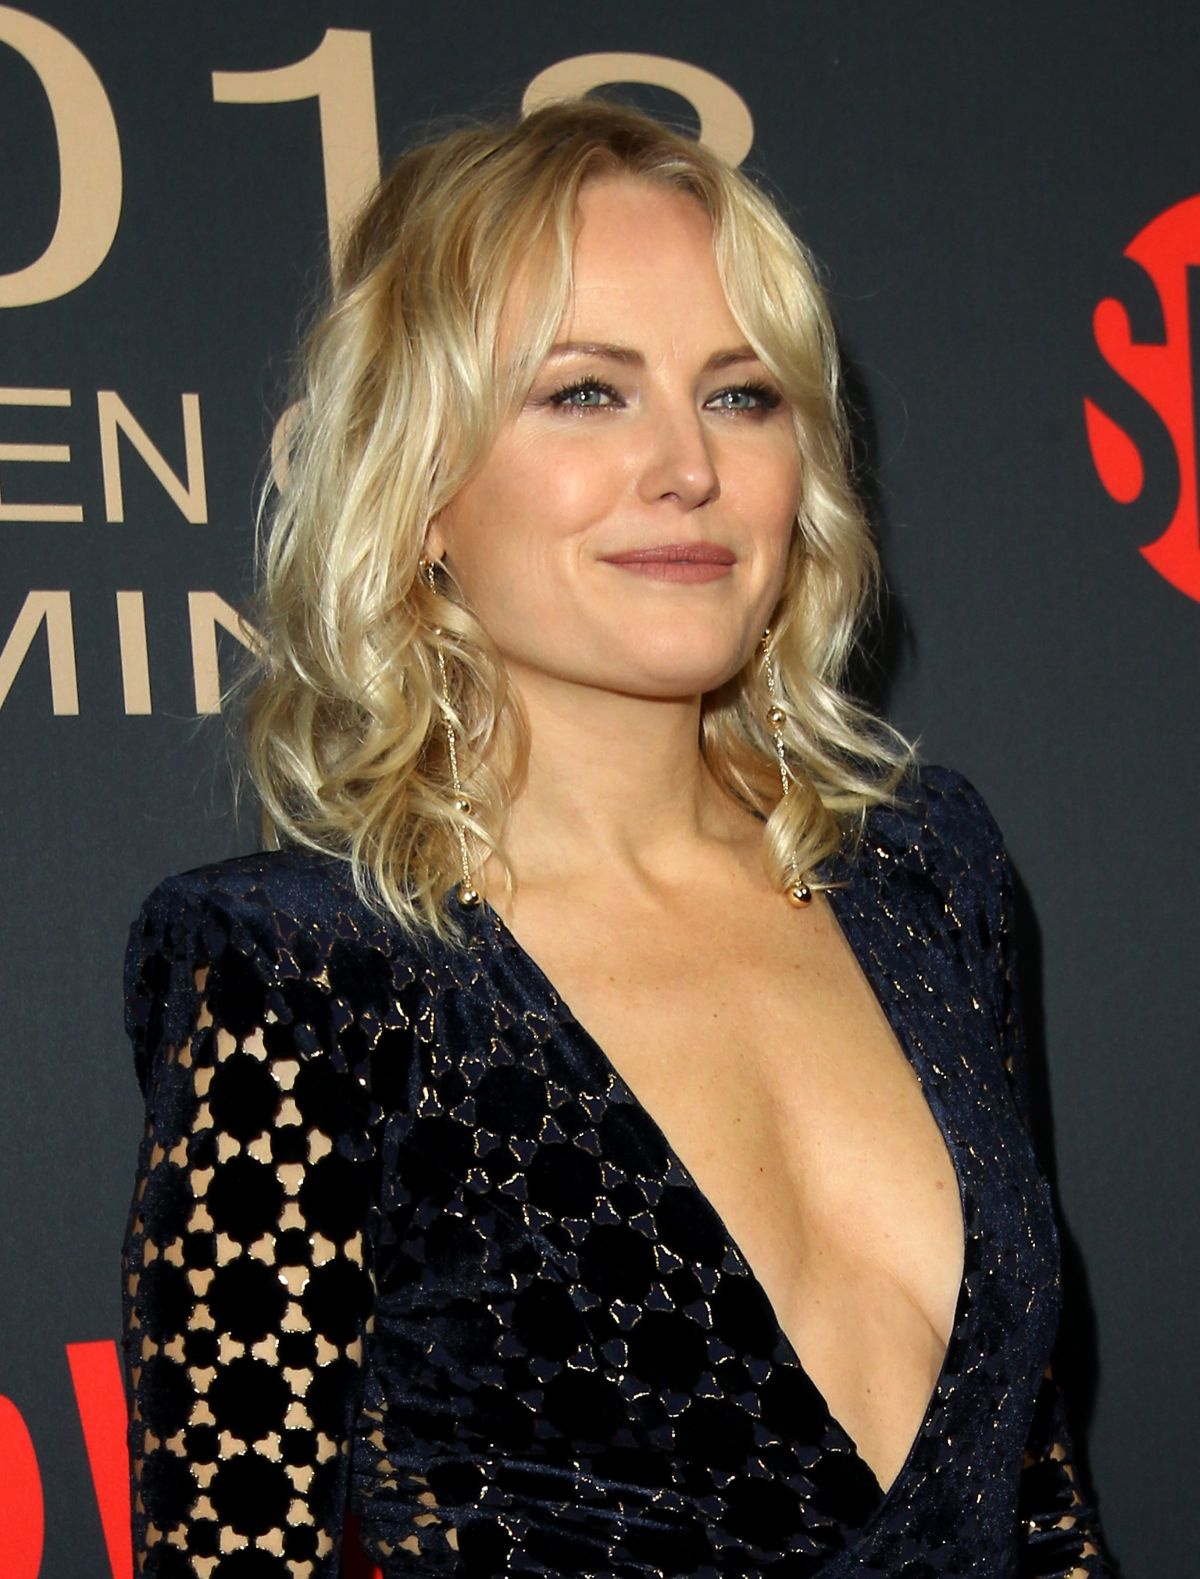 Pictures Malin Akerman nude (81 photo), Topless, Hot, Selfie, cleavage 2019